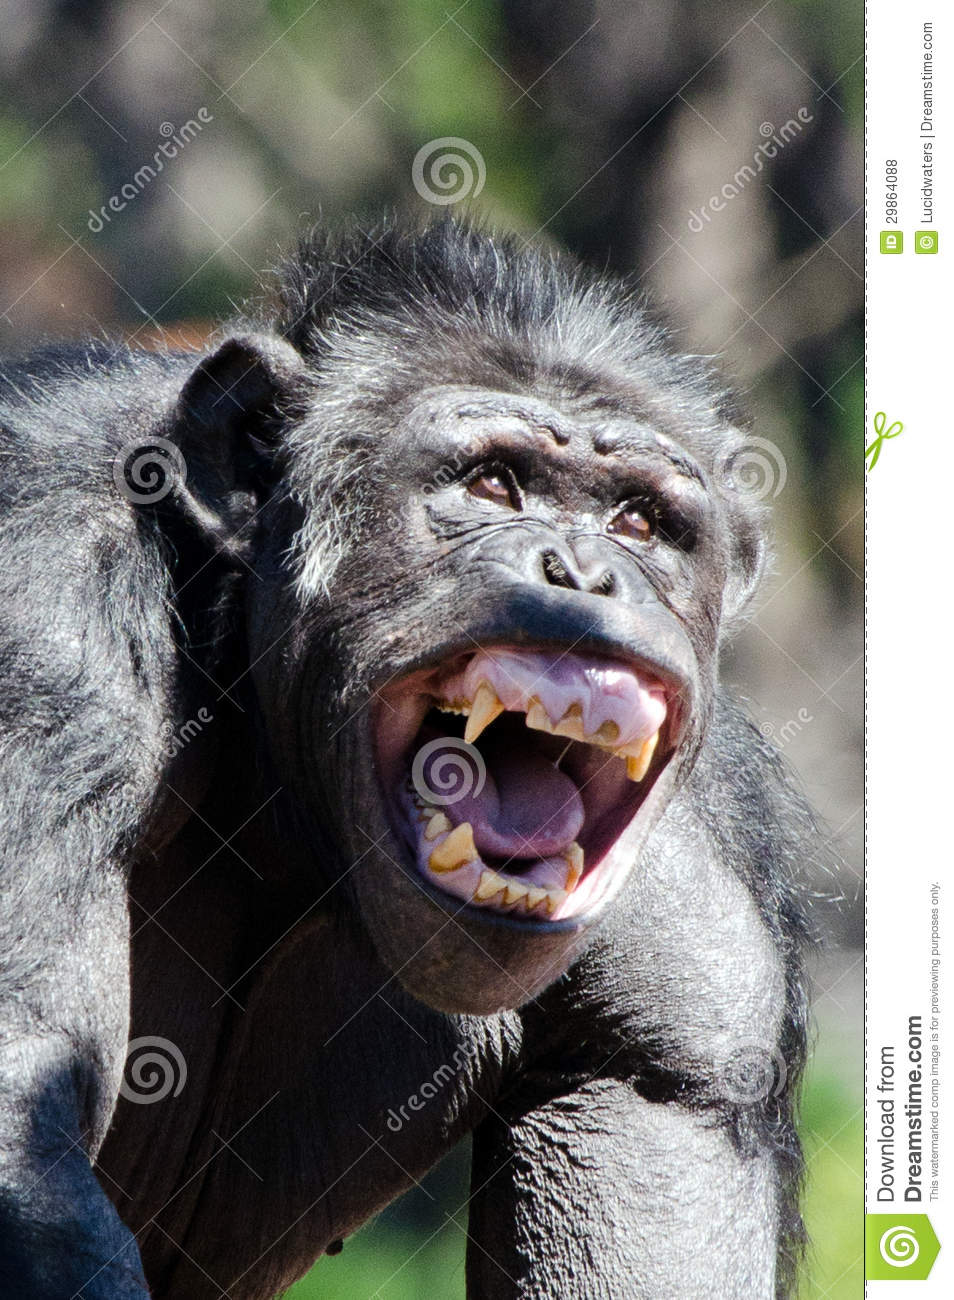 Chimpanzee stock photo  Image of scary, metal, energy - 29864088